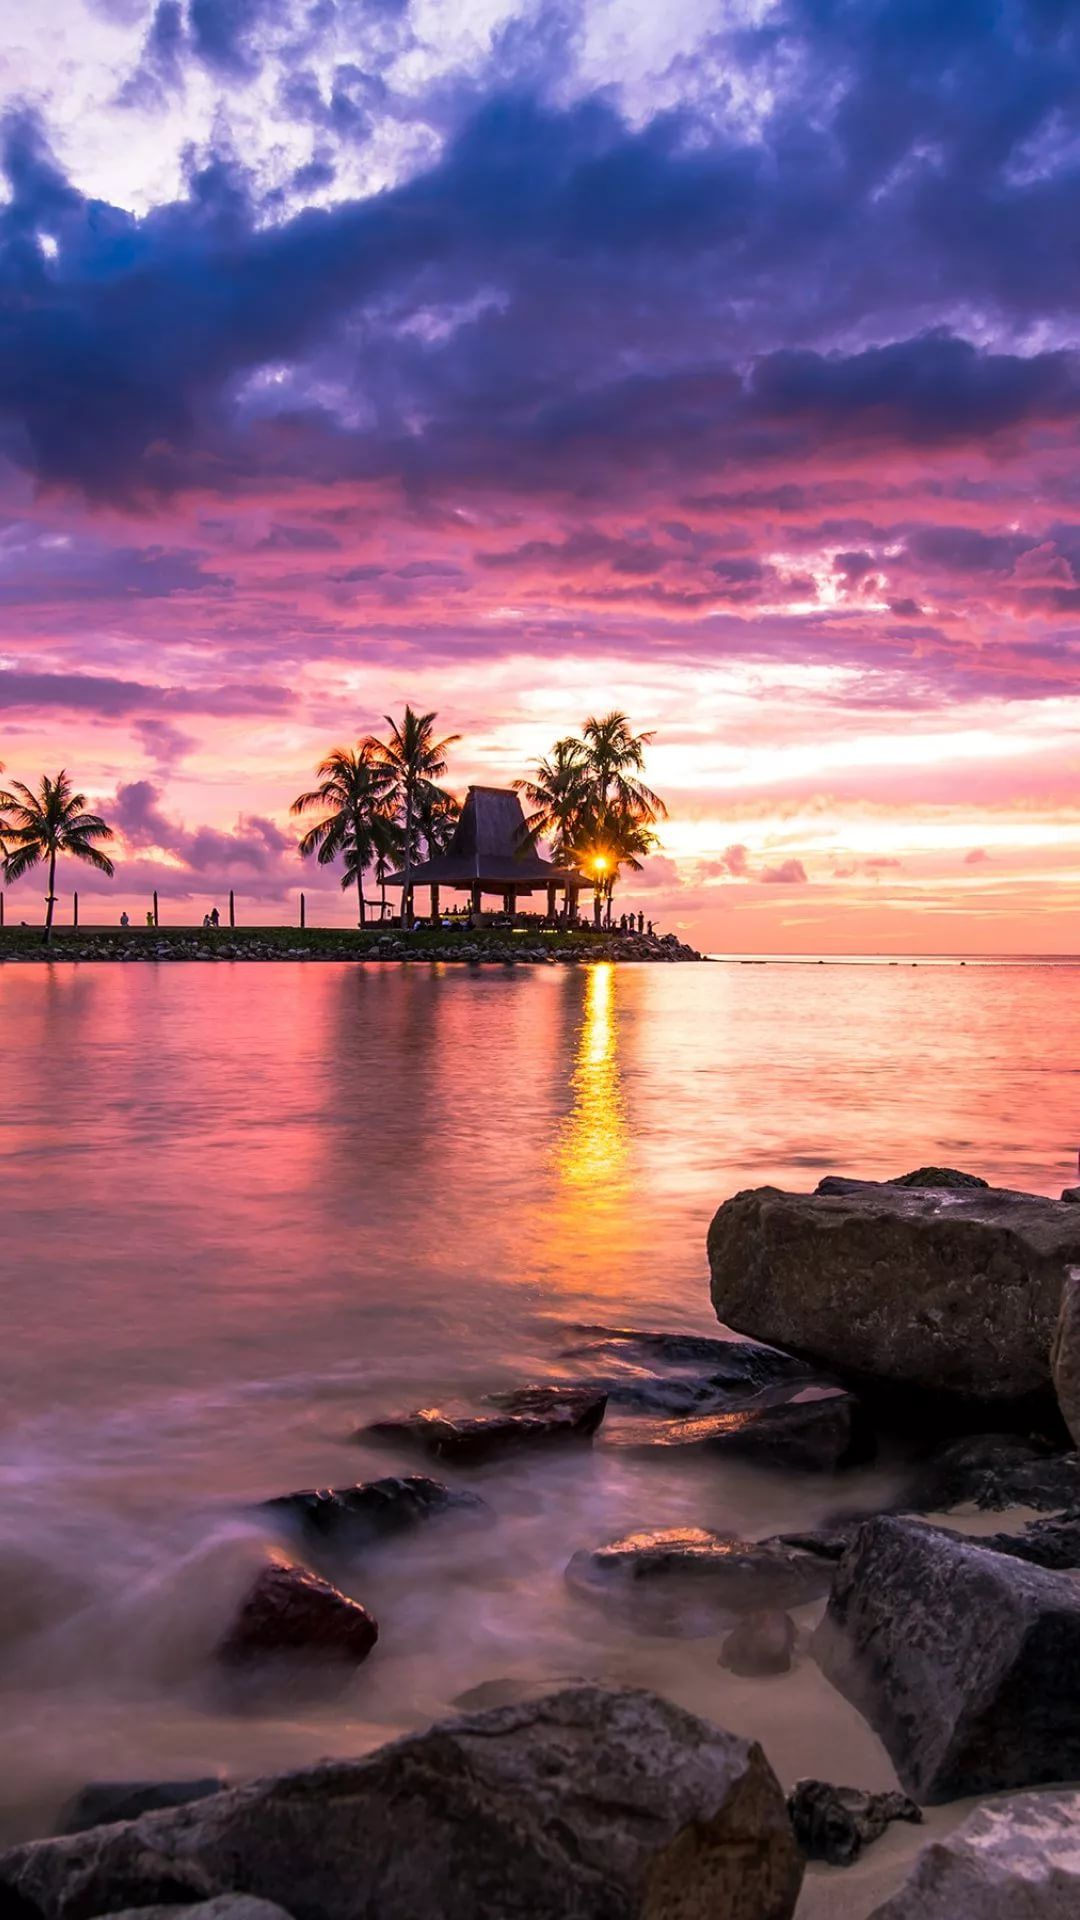 Beautiful Sunset HD wallpaper for mobile